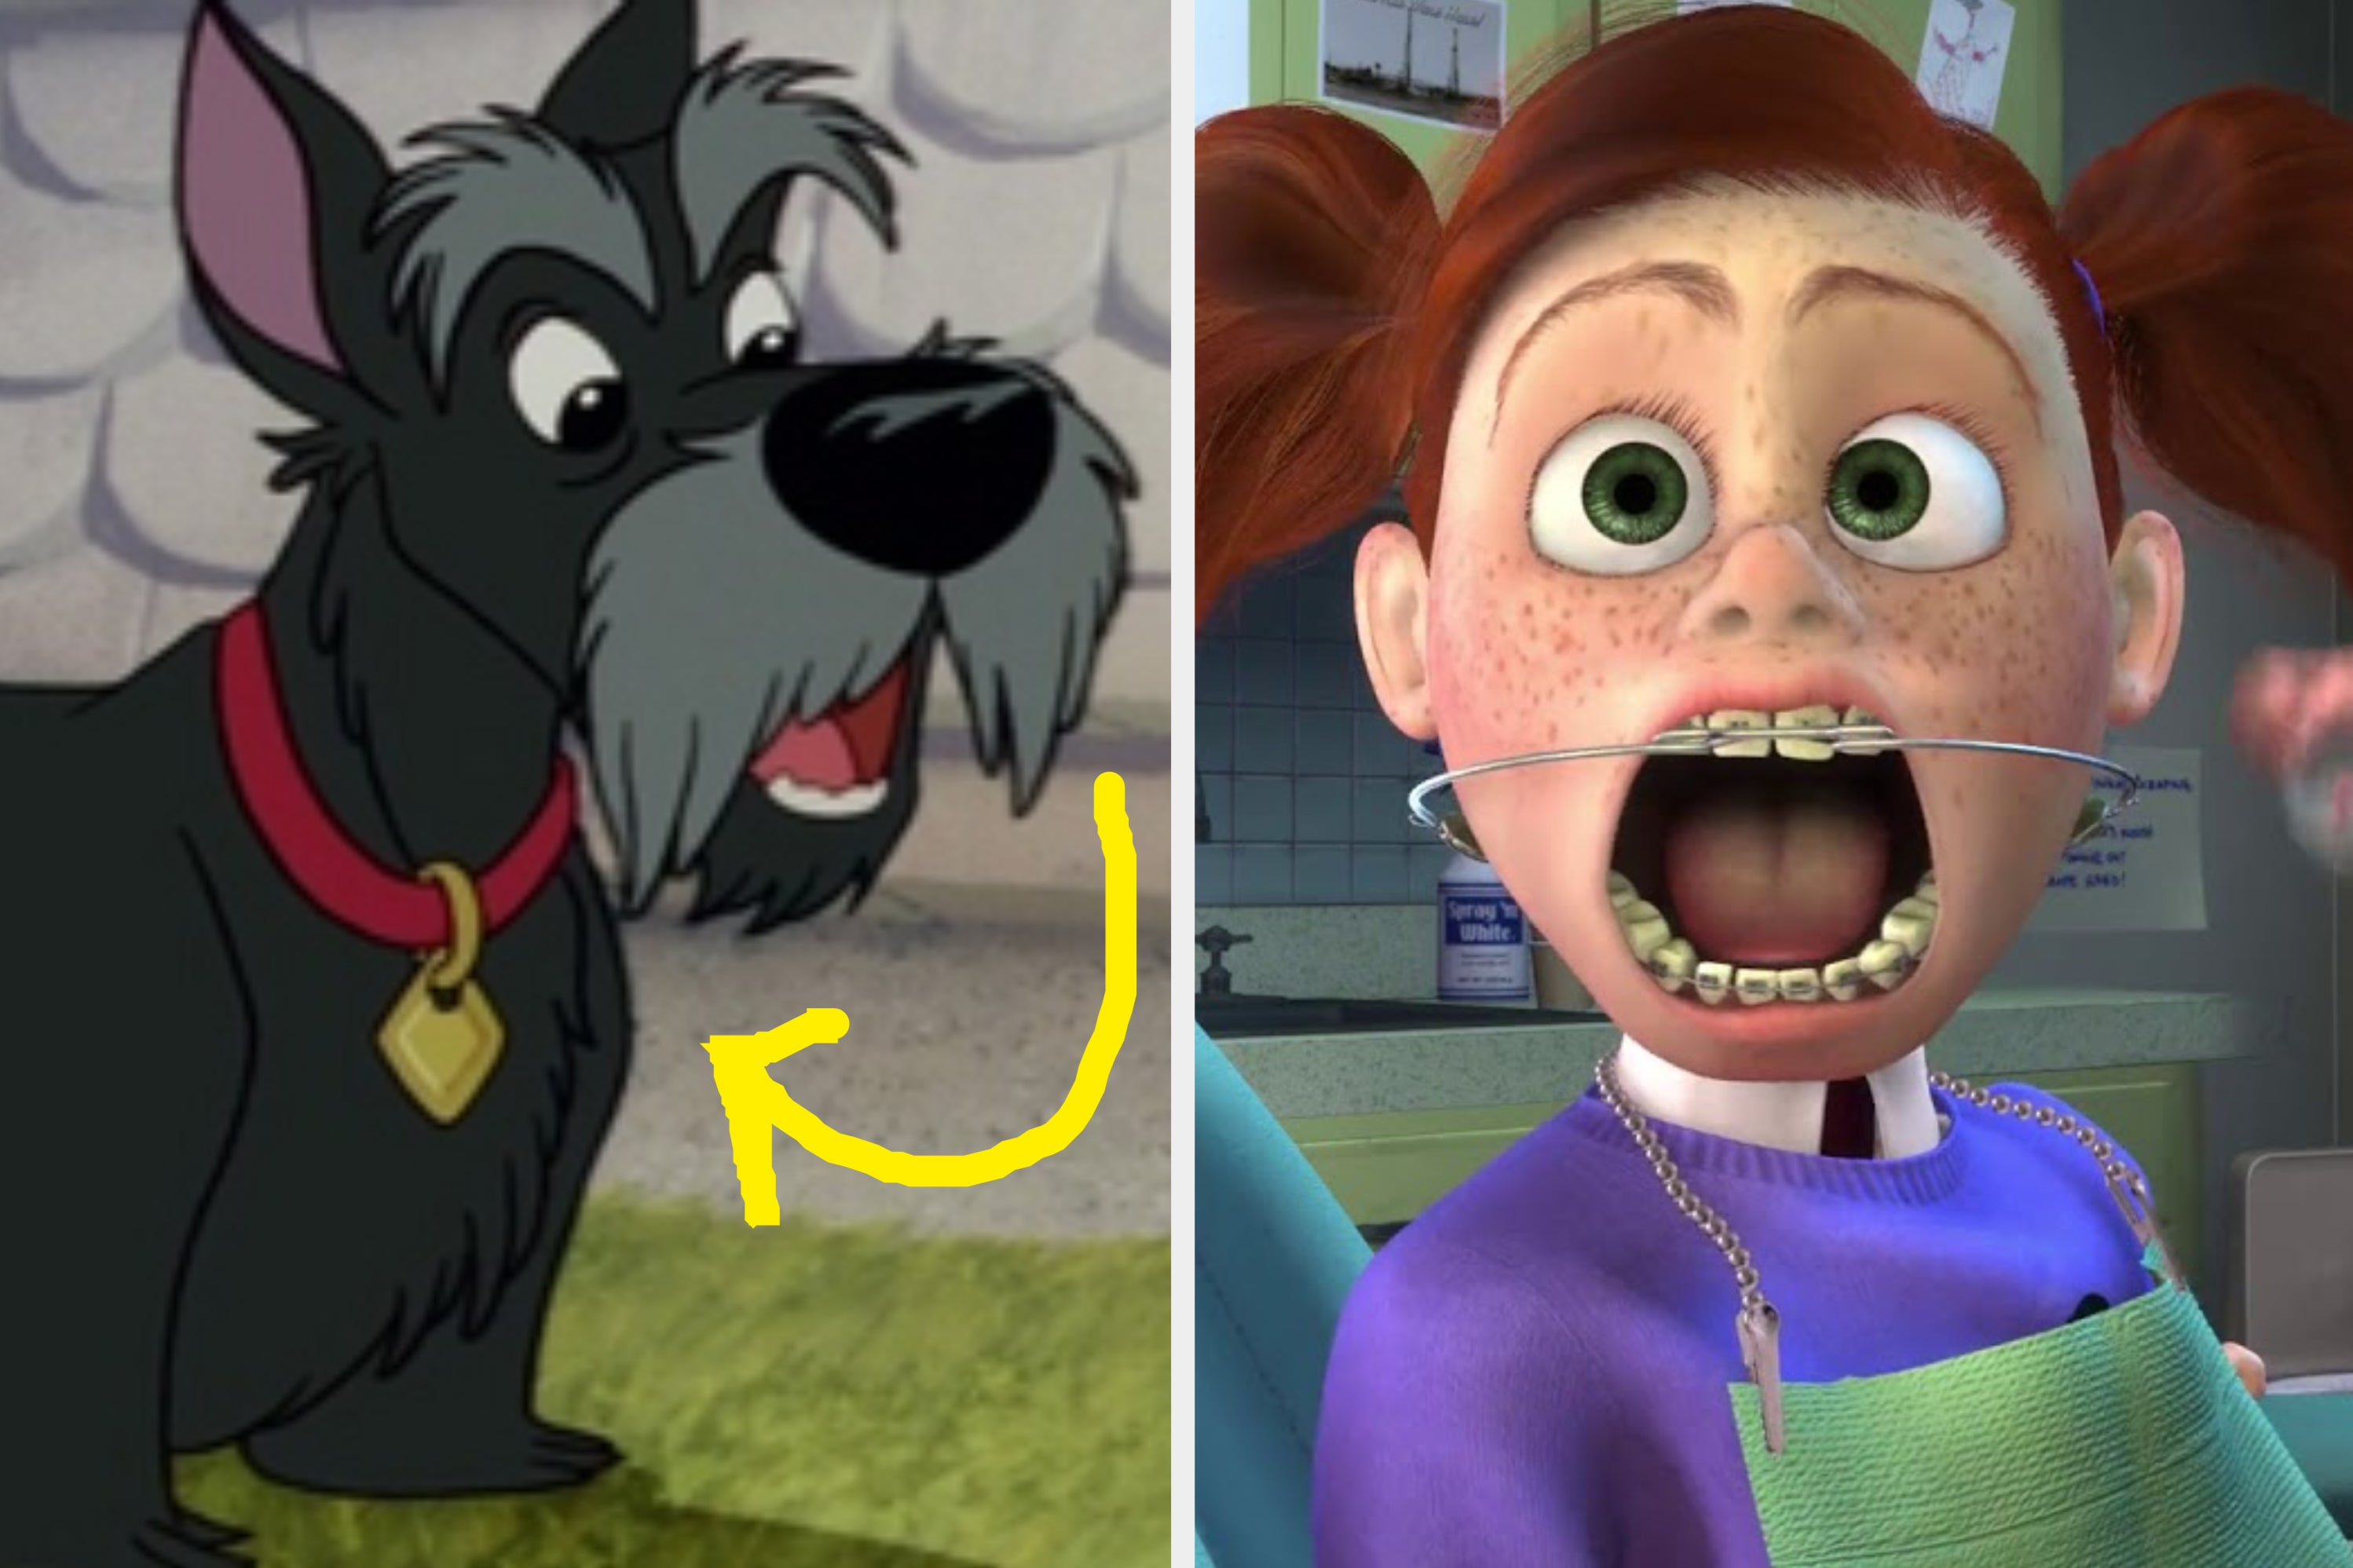 98% Of People Don't Remember All The Names Of These Disney/Pixar Characters —Do You?